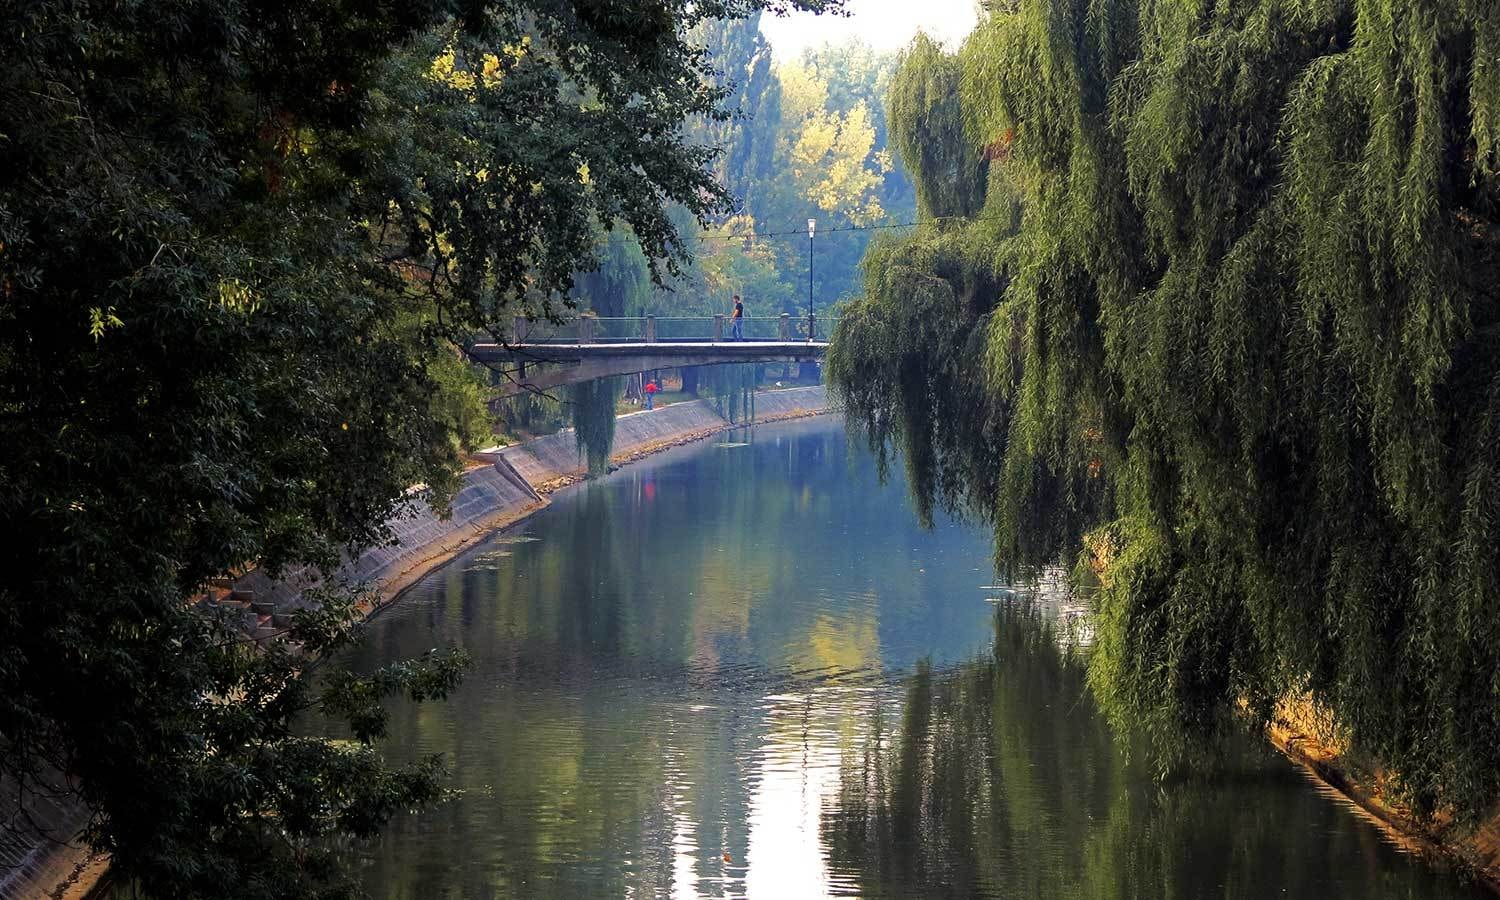 Bega canal in modern-day Timisoara is one of the old waterways still functioning. - Photo by Urooj Qureshi